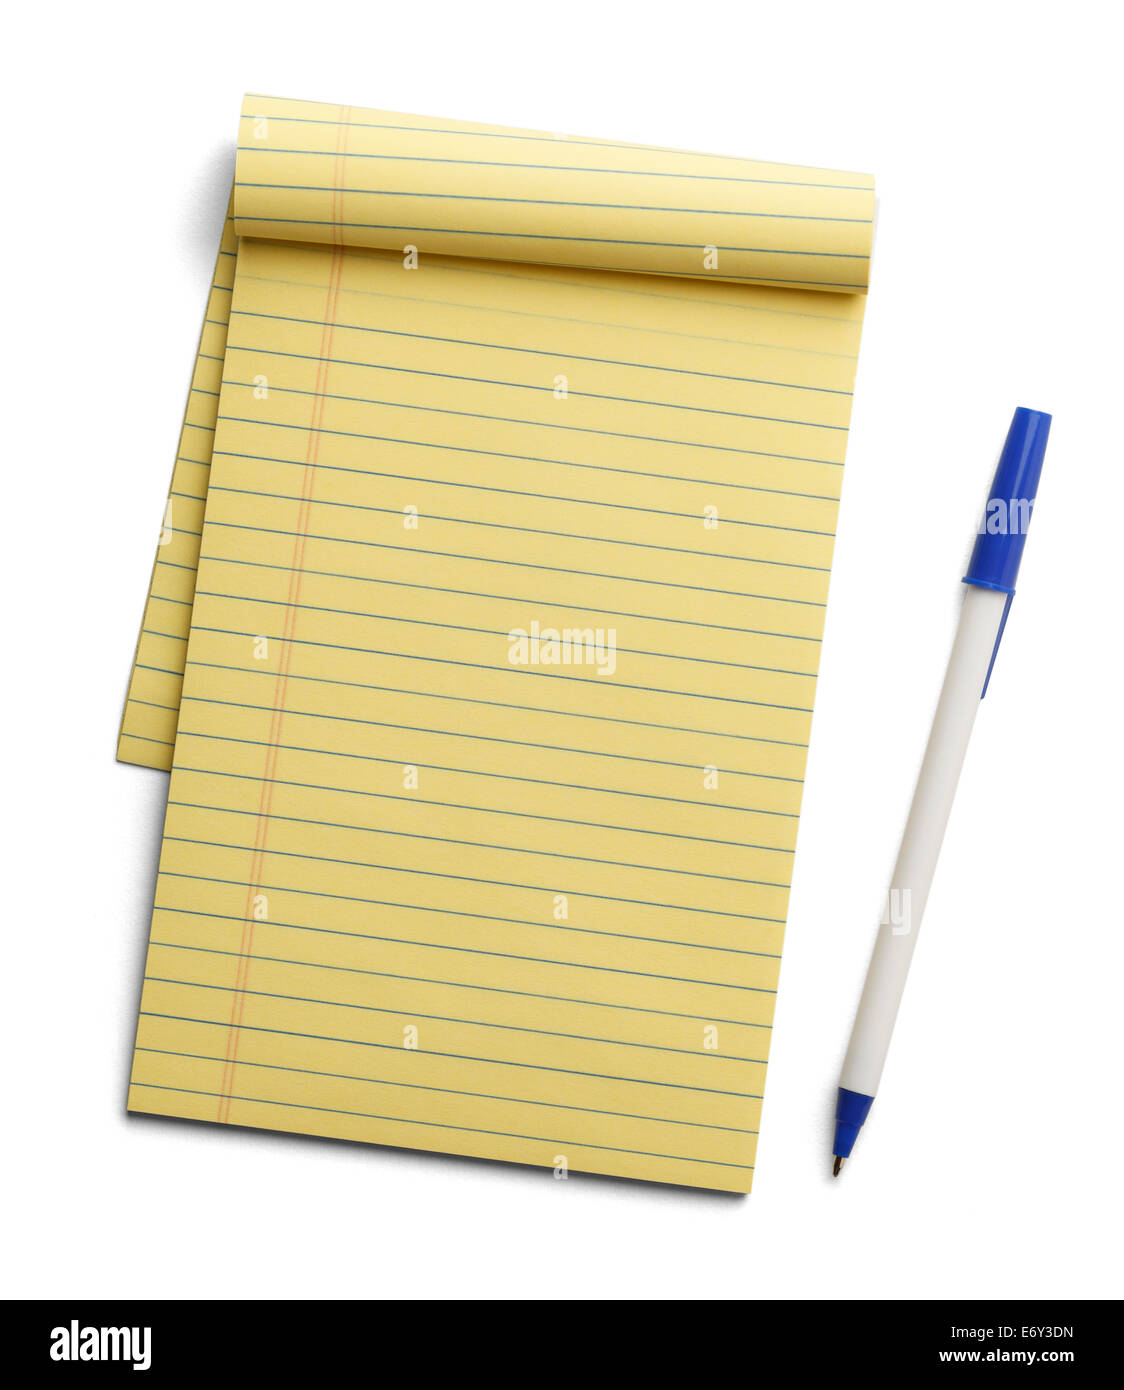 Yellow note pad with blue pen next to it isolated on white background. - Stock Image